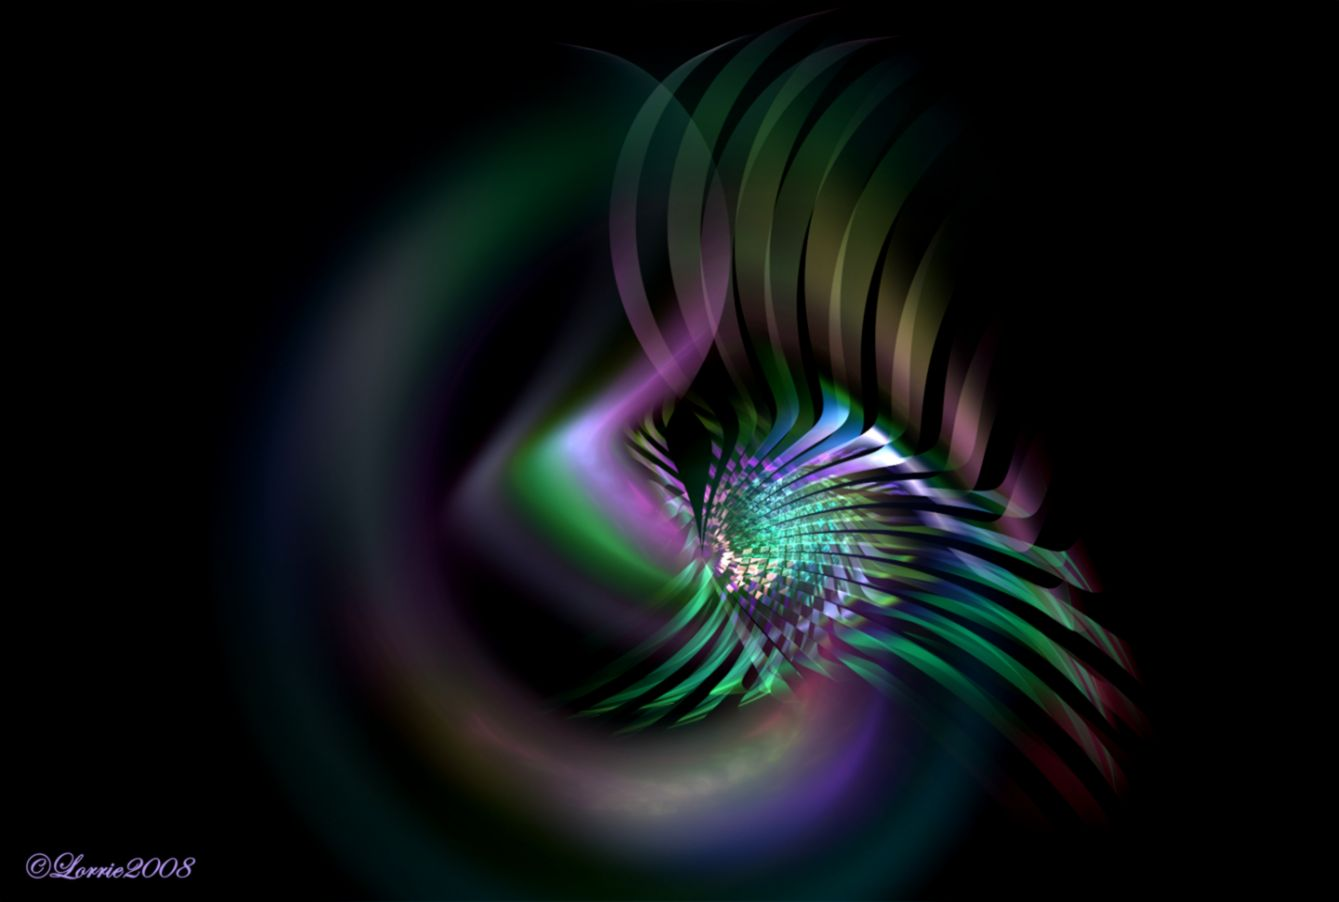 Abstract Peacock Wallpaper   Wallpapers Gallery